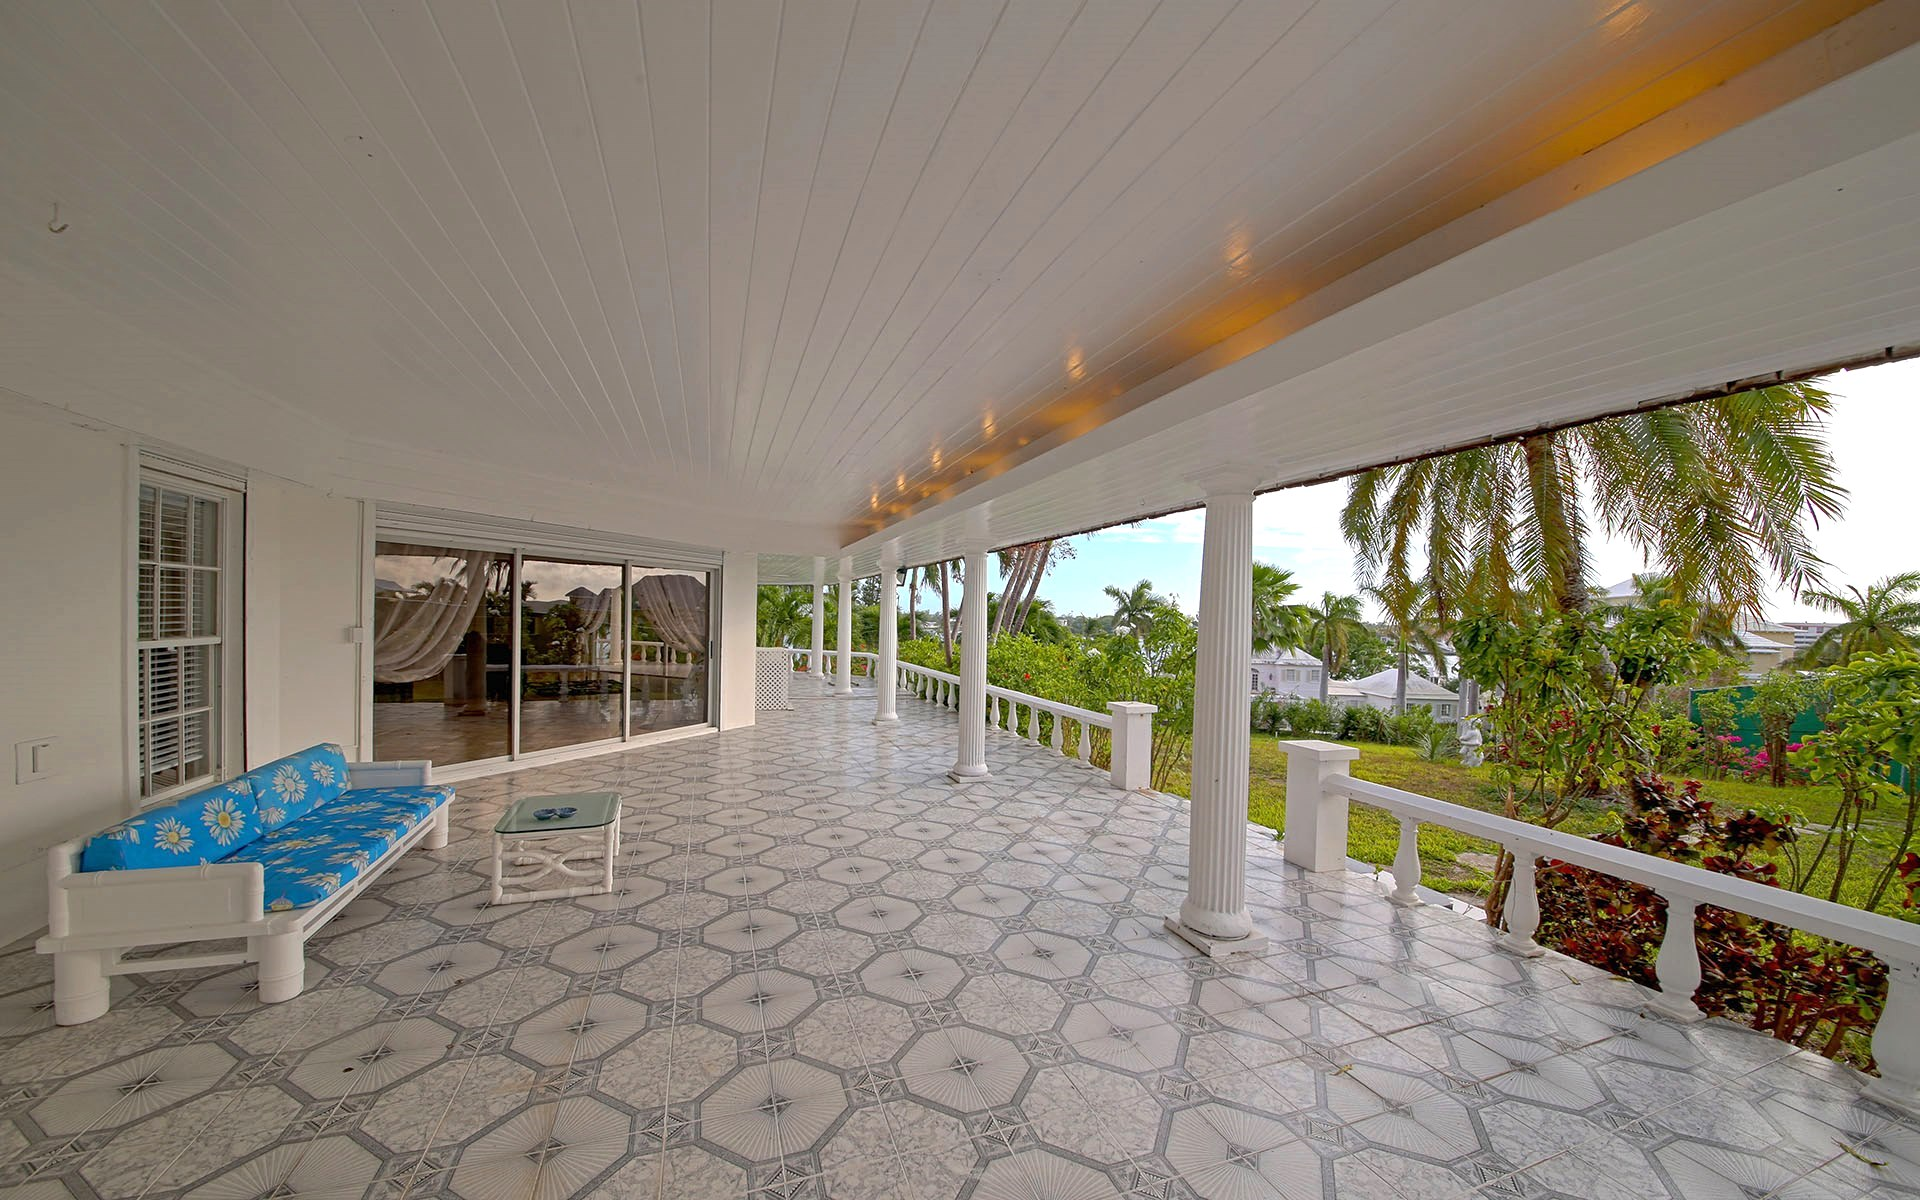 Additional photo for property listing at Once in a lifetime development opportunity on Paradise Island - MLS 29190 Paradise Island, Nassau And Paradise Island, Bahamas